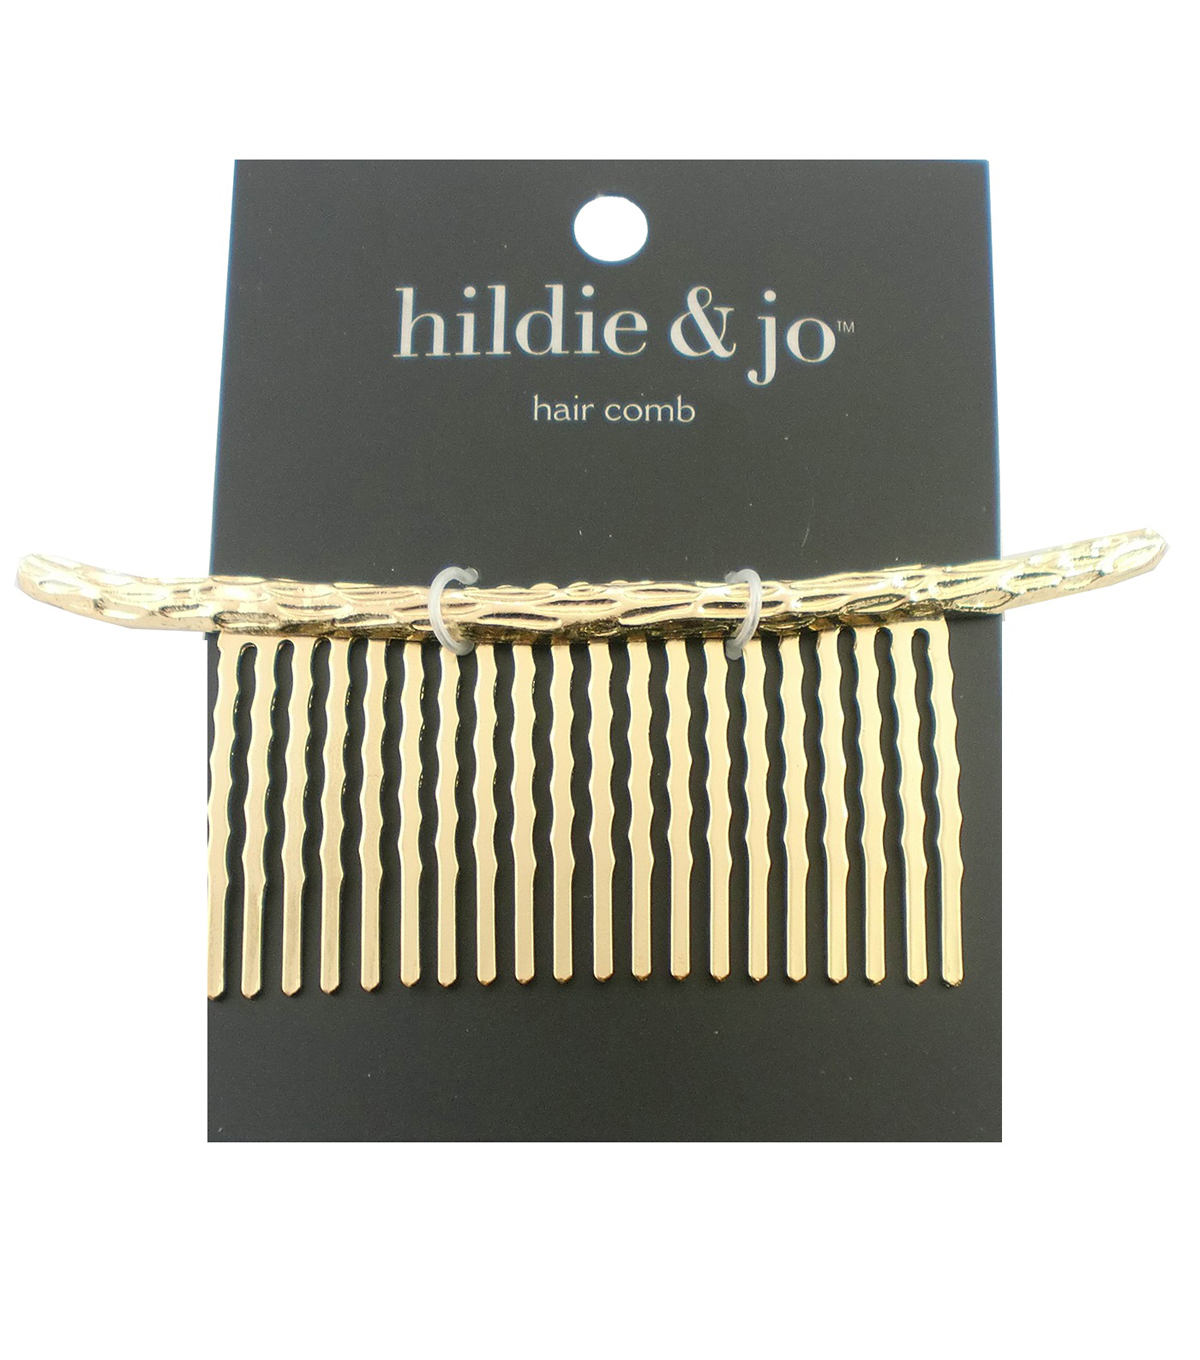 hildie & jo Hammered Gold Hair Comb